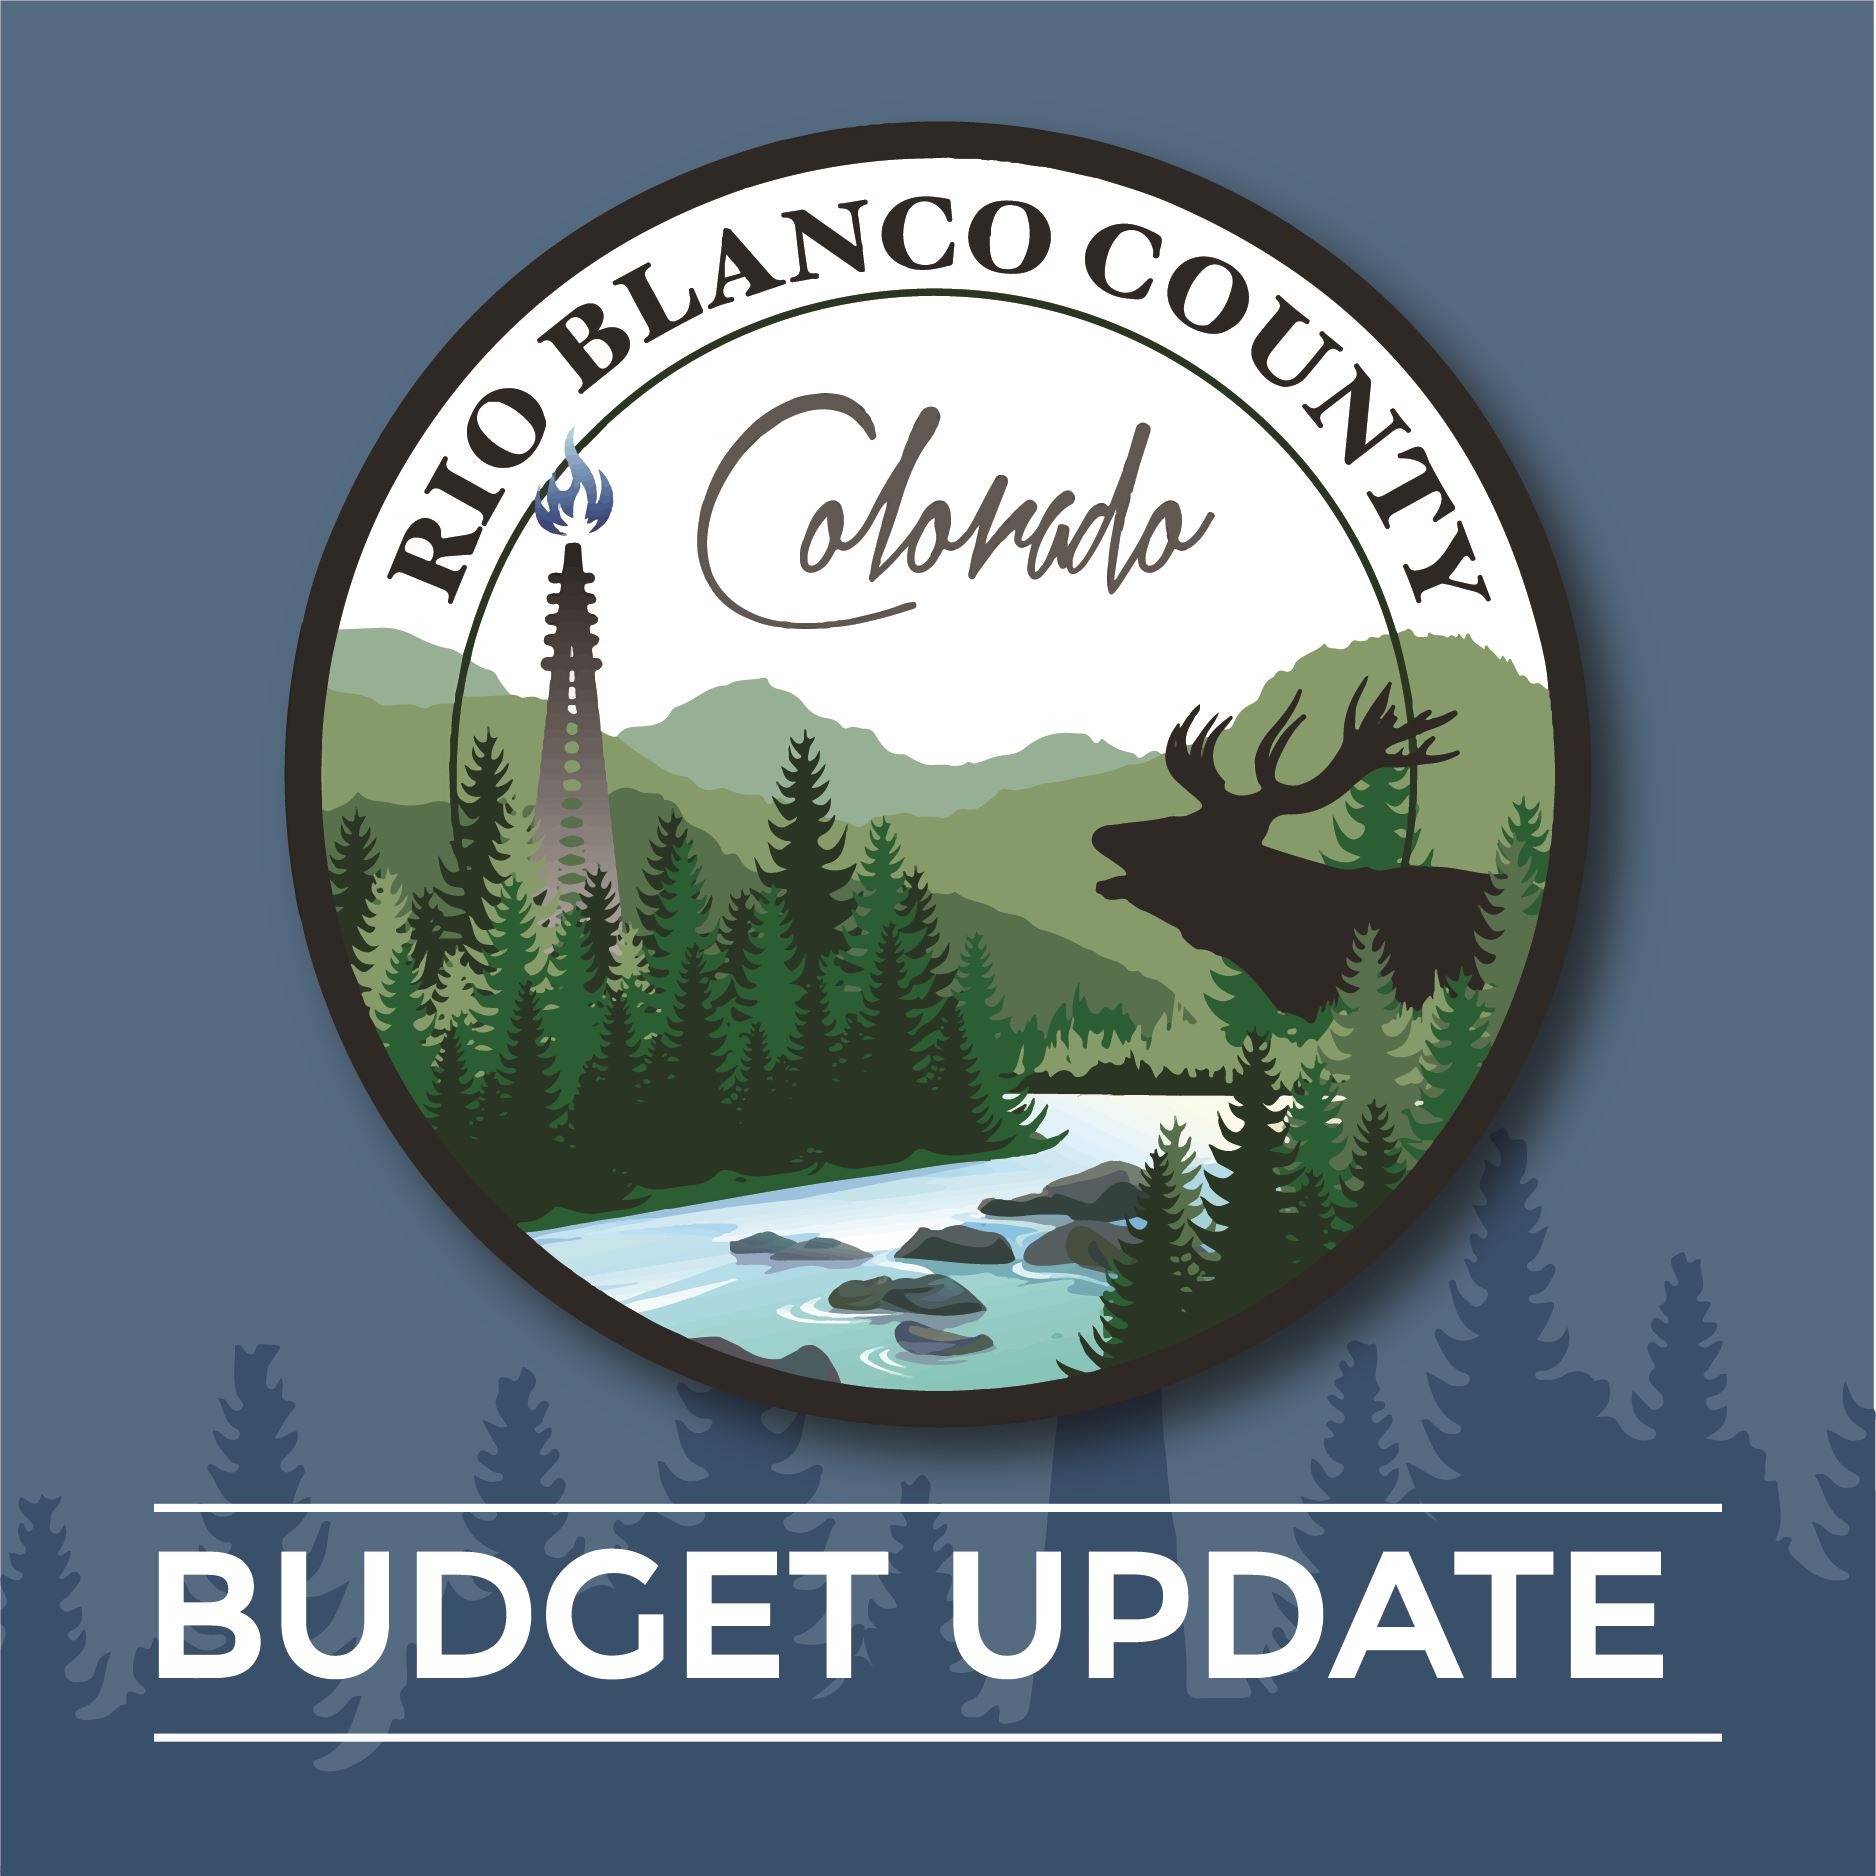 RBC Website_News Update_Budget